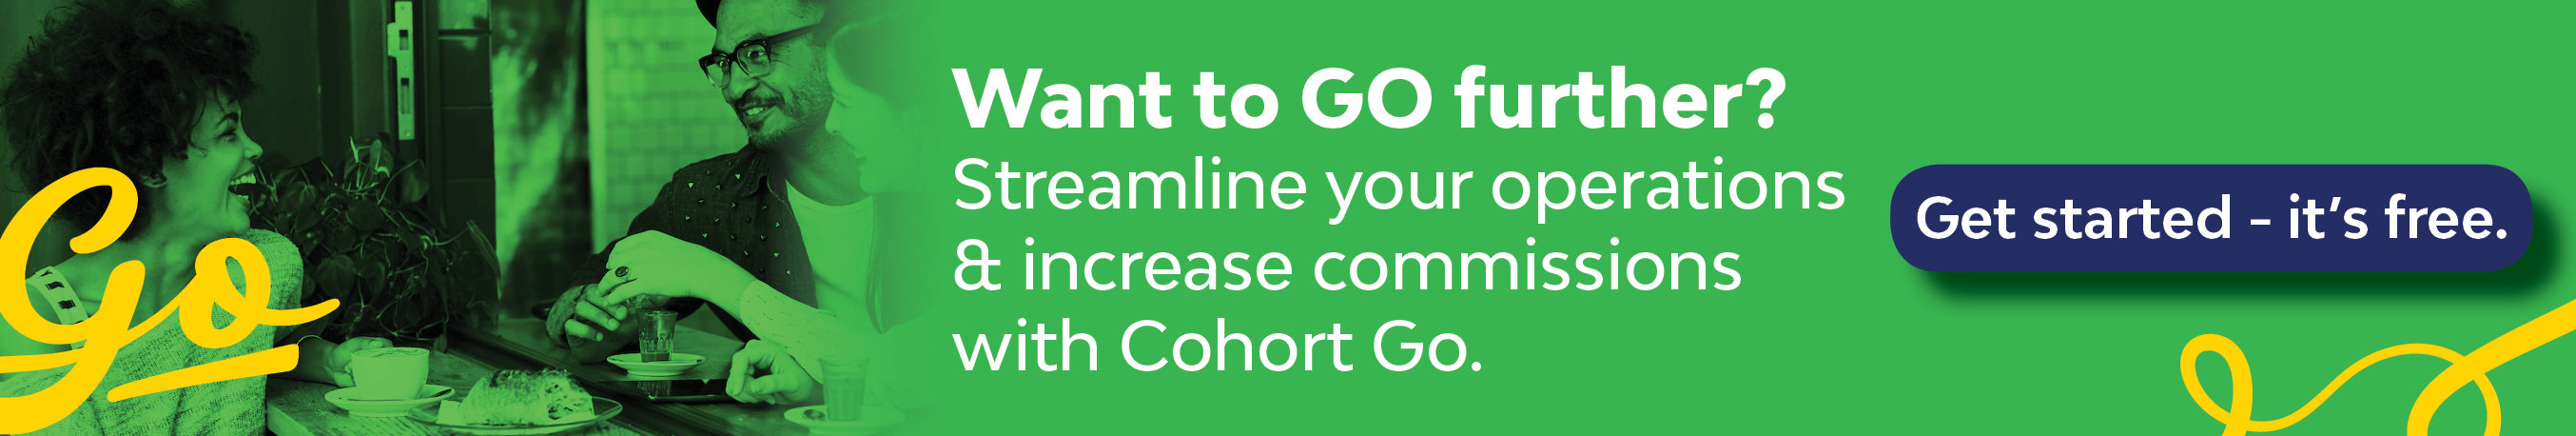 Get started with your free Cohort Go portal today.